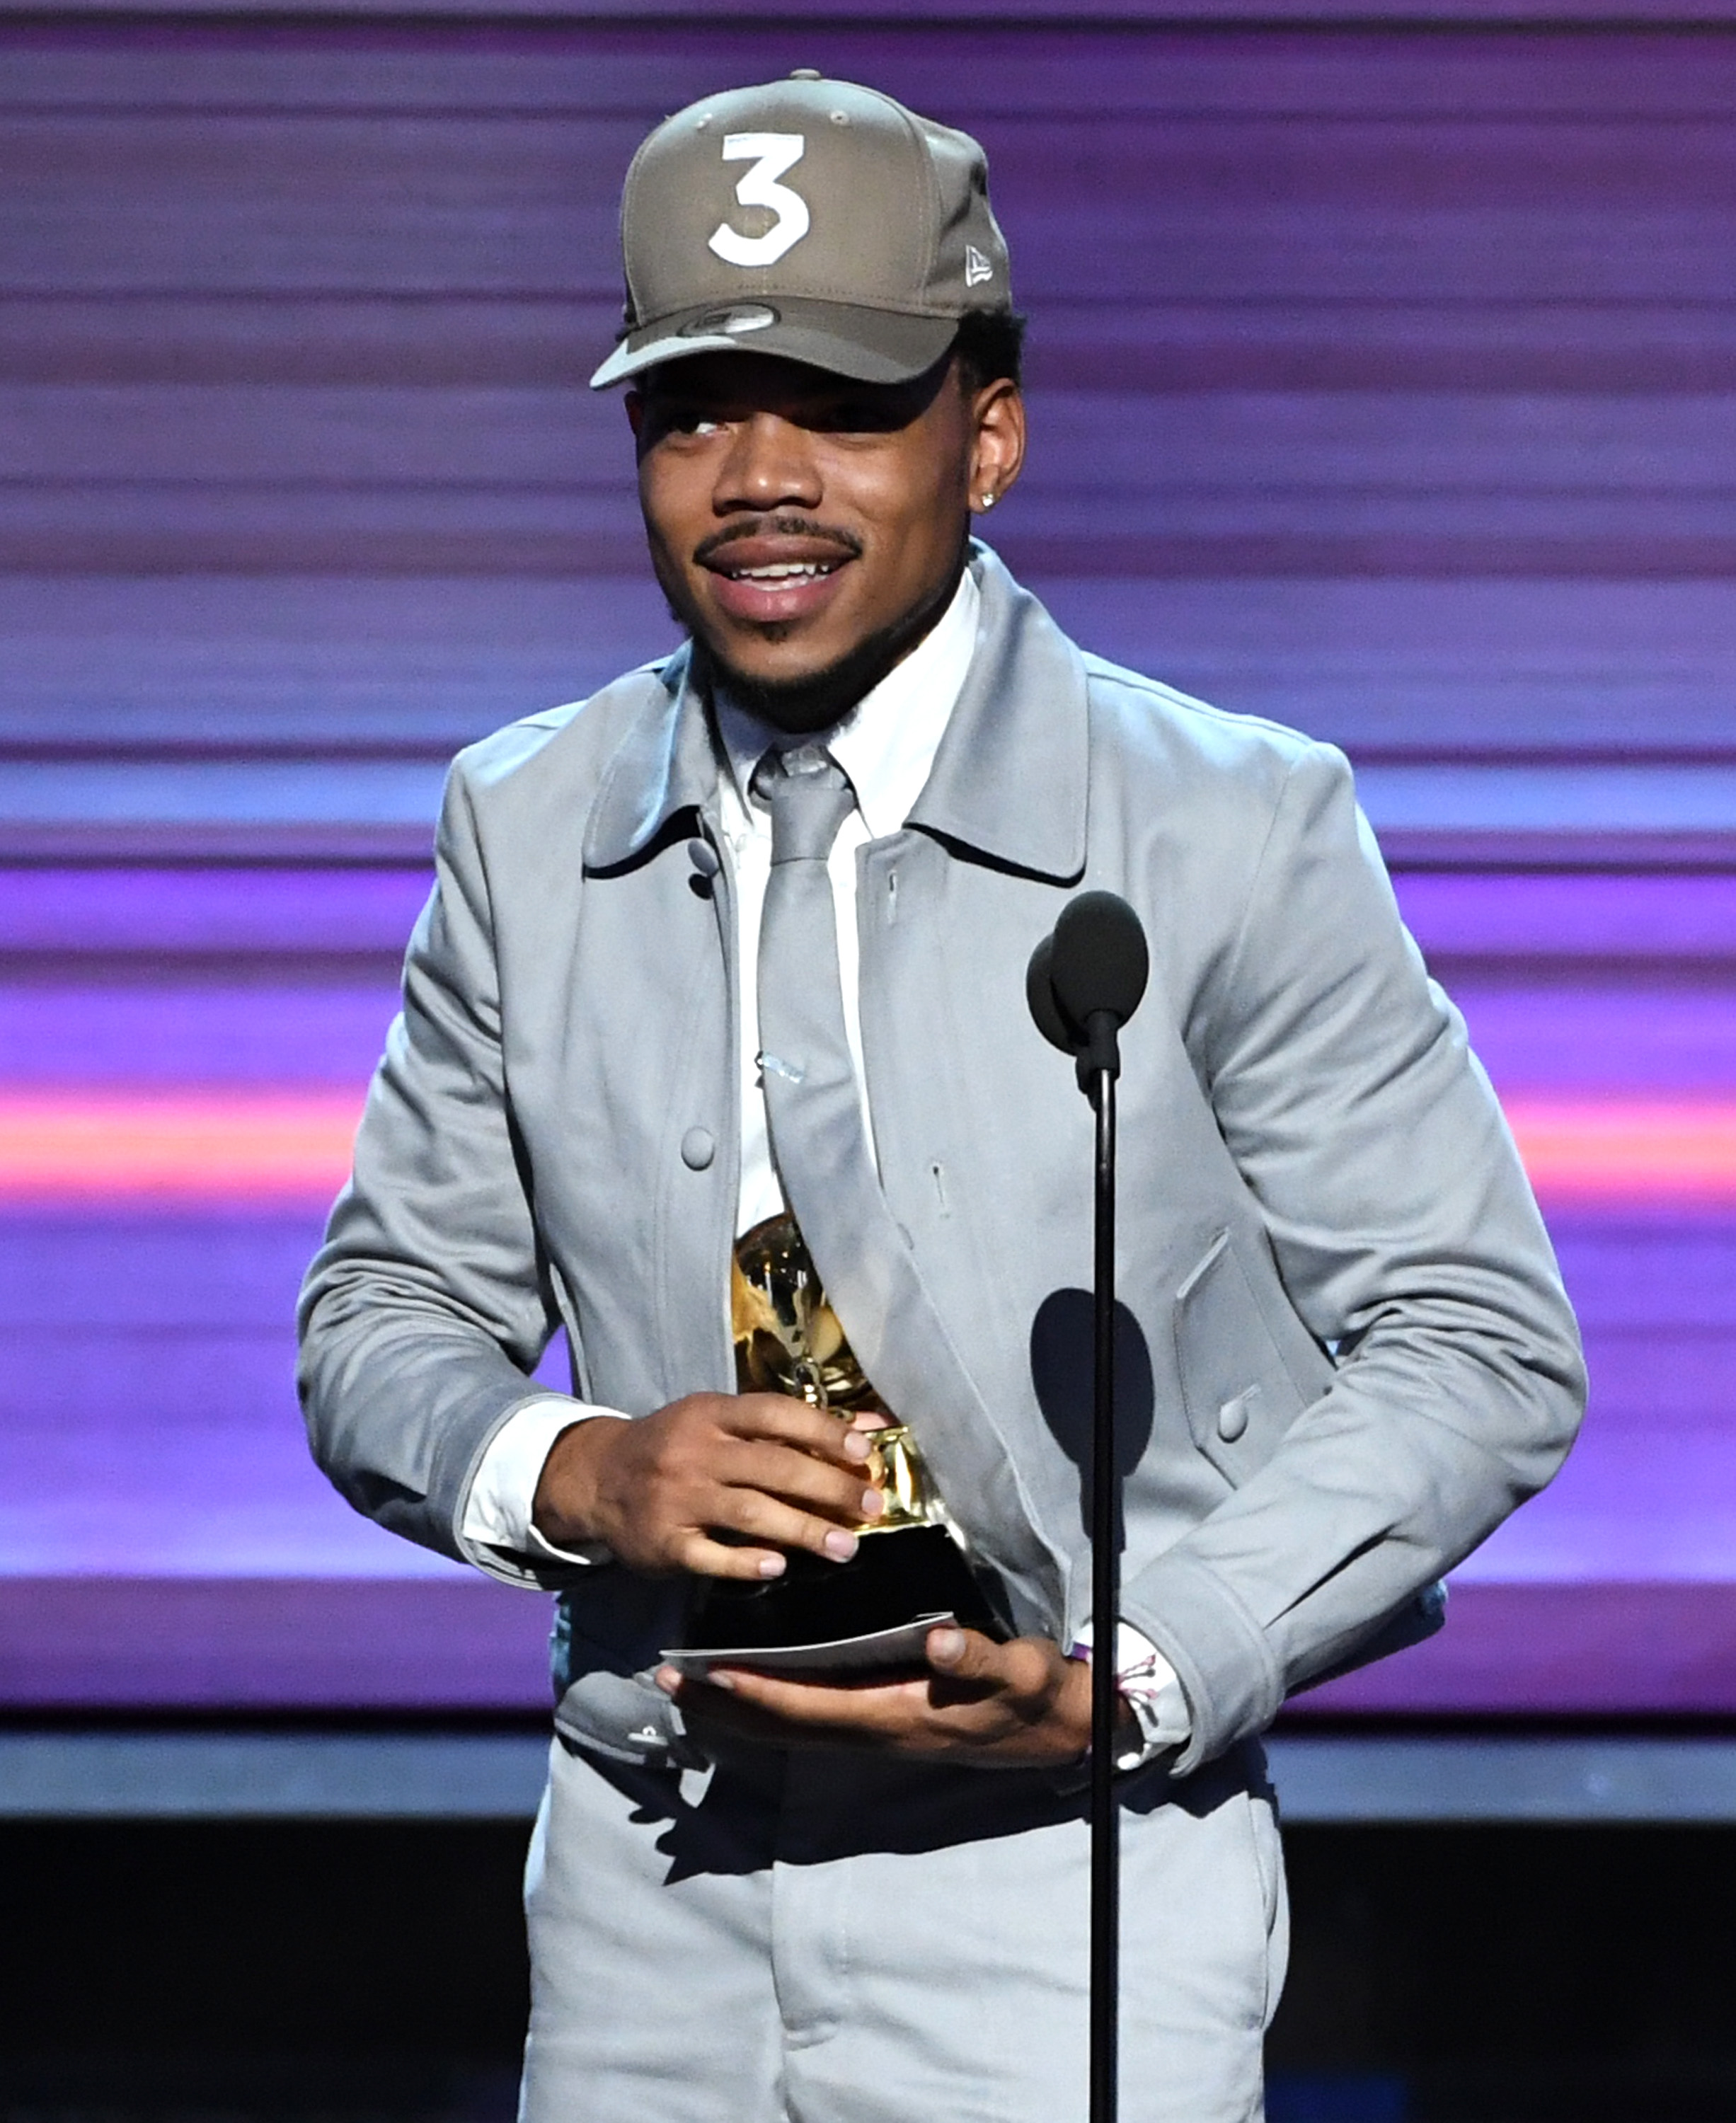 Coloring Book – Chance The Rapper